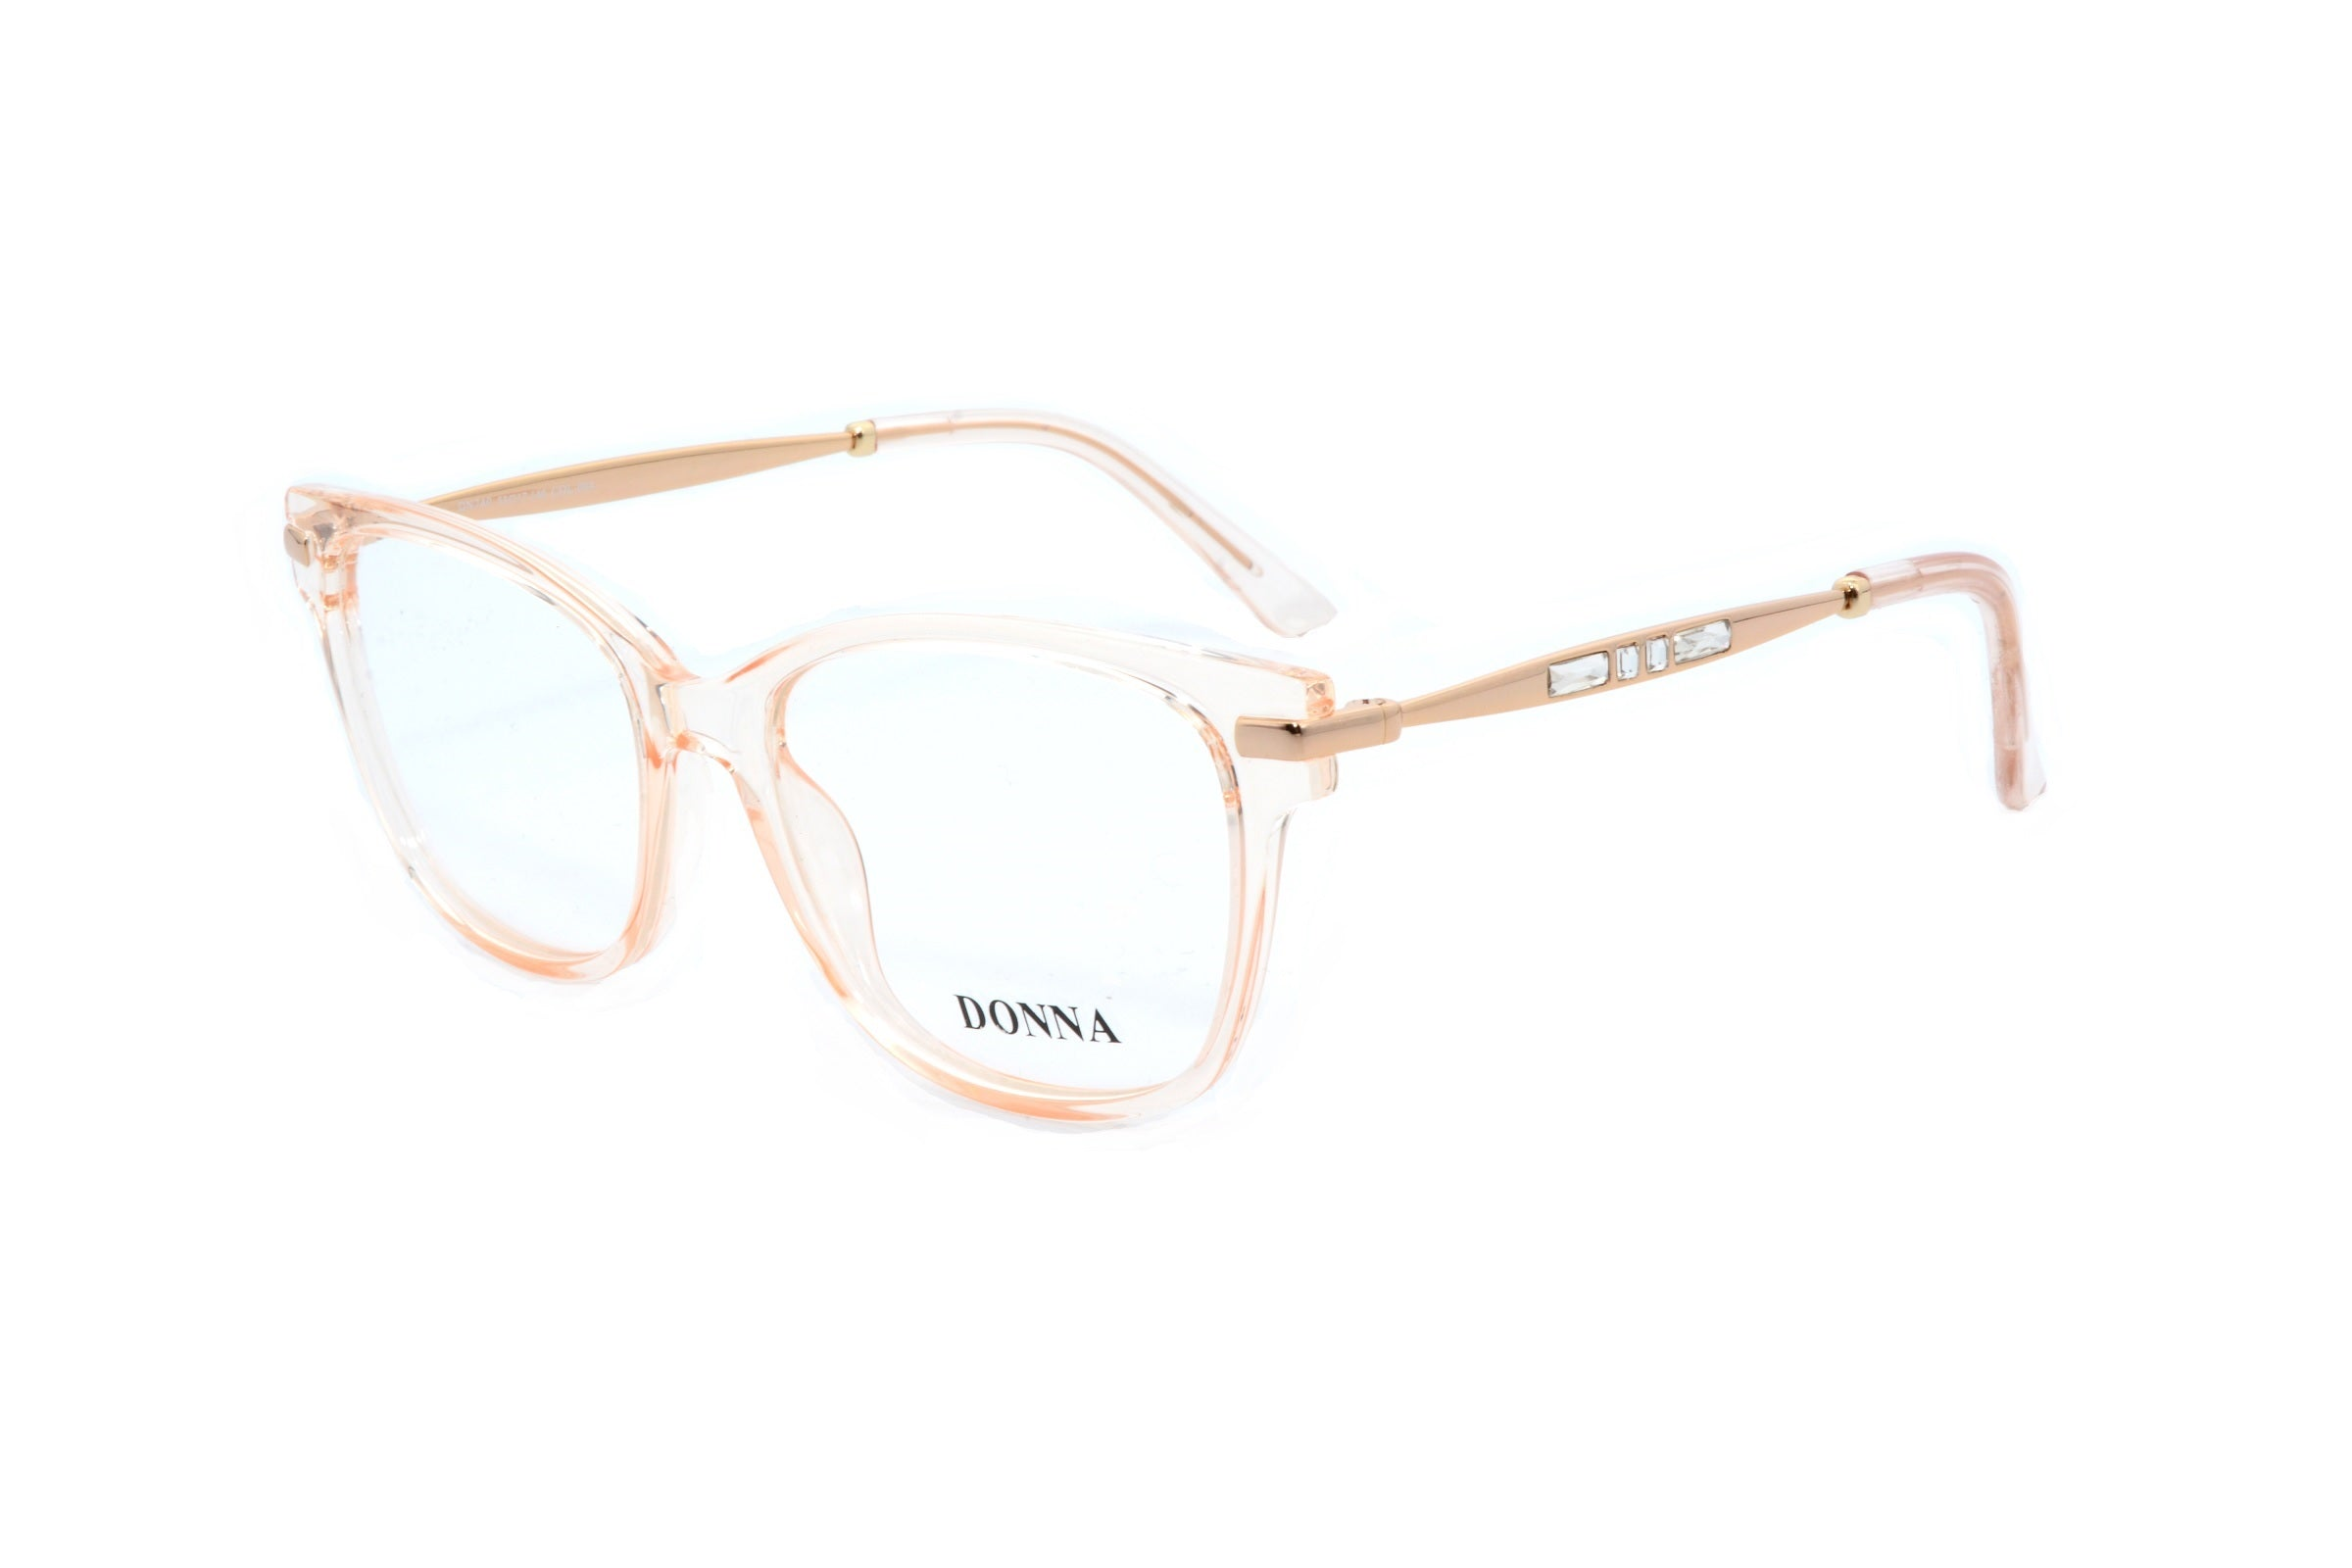 Donna eyewear 740, C004 - Optics Trading